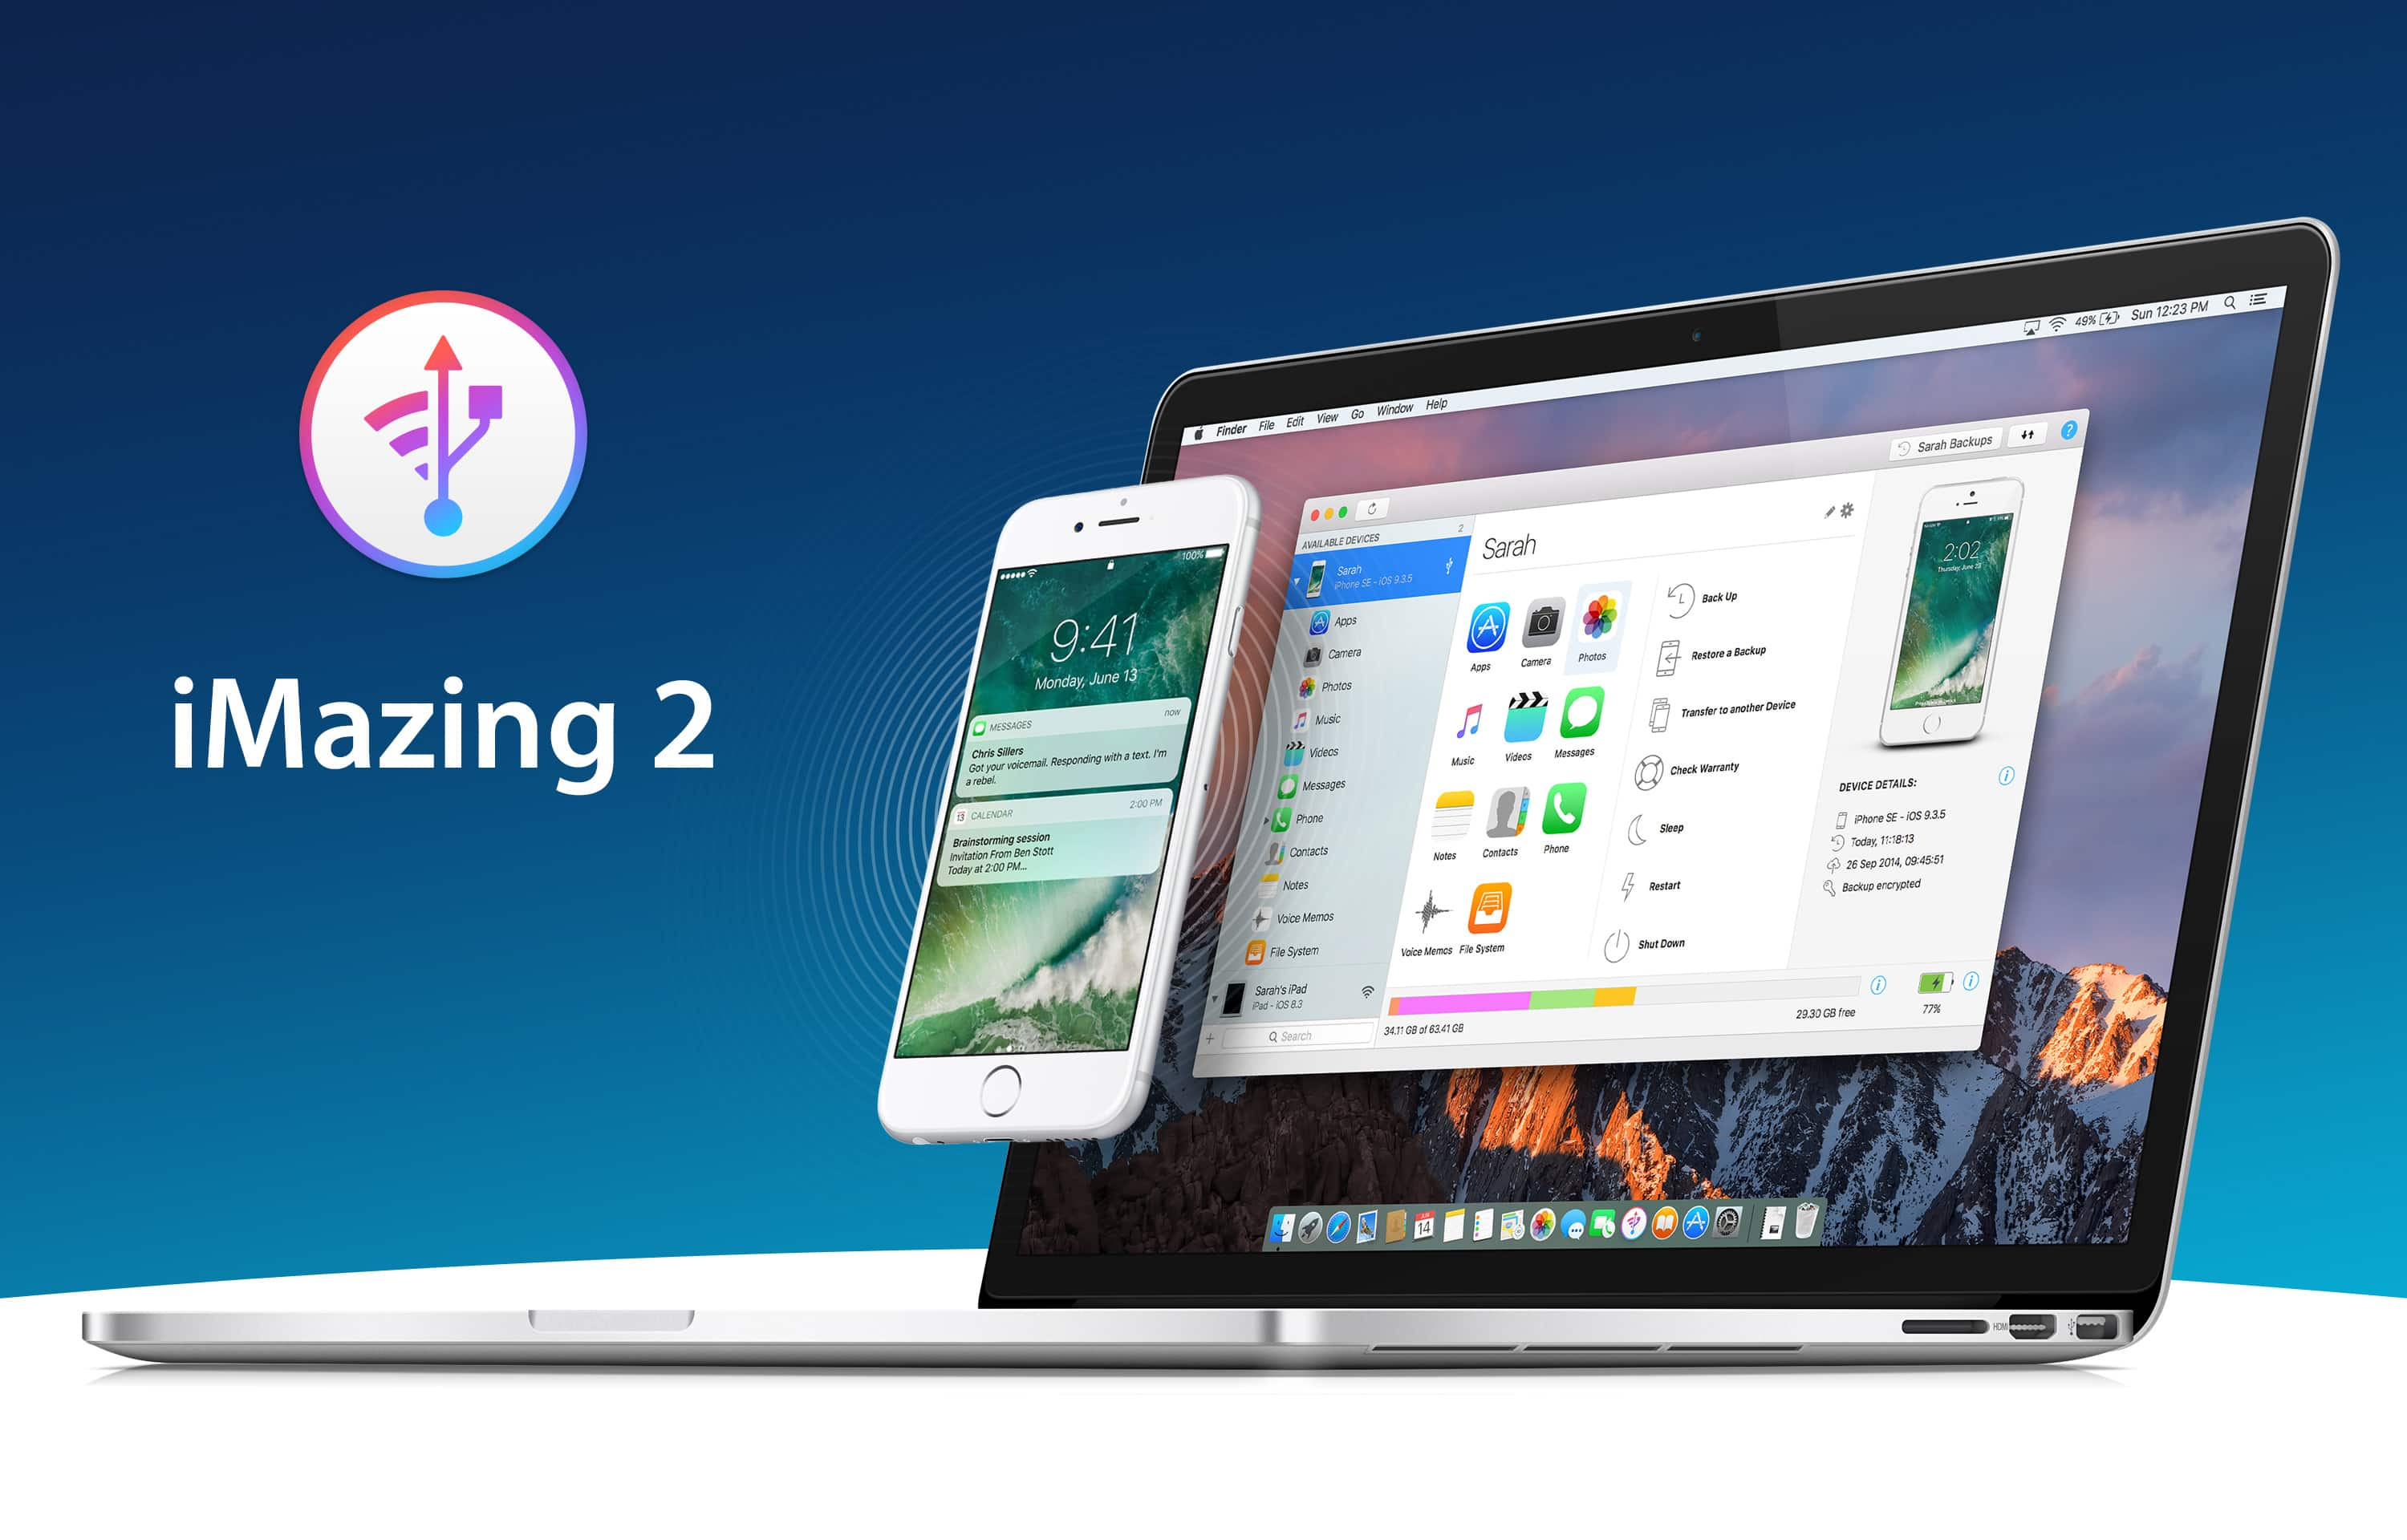 The latest version of iMazing, an iOS device manager for Mac and PC, adds iOS 10.3 compatibility and great new features